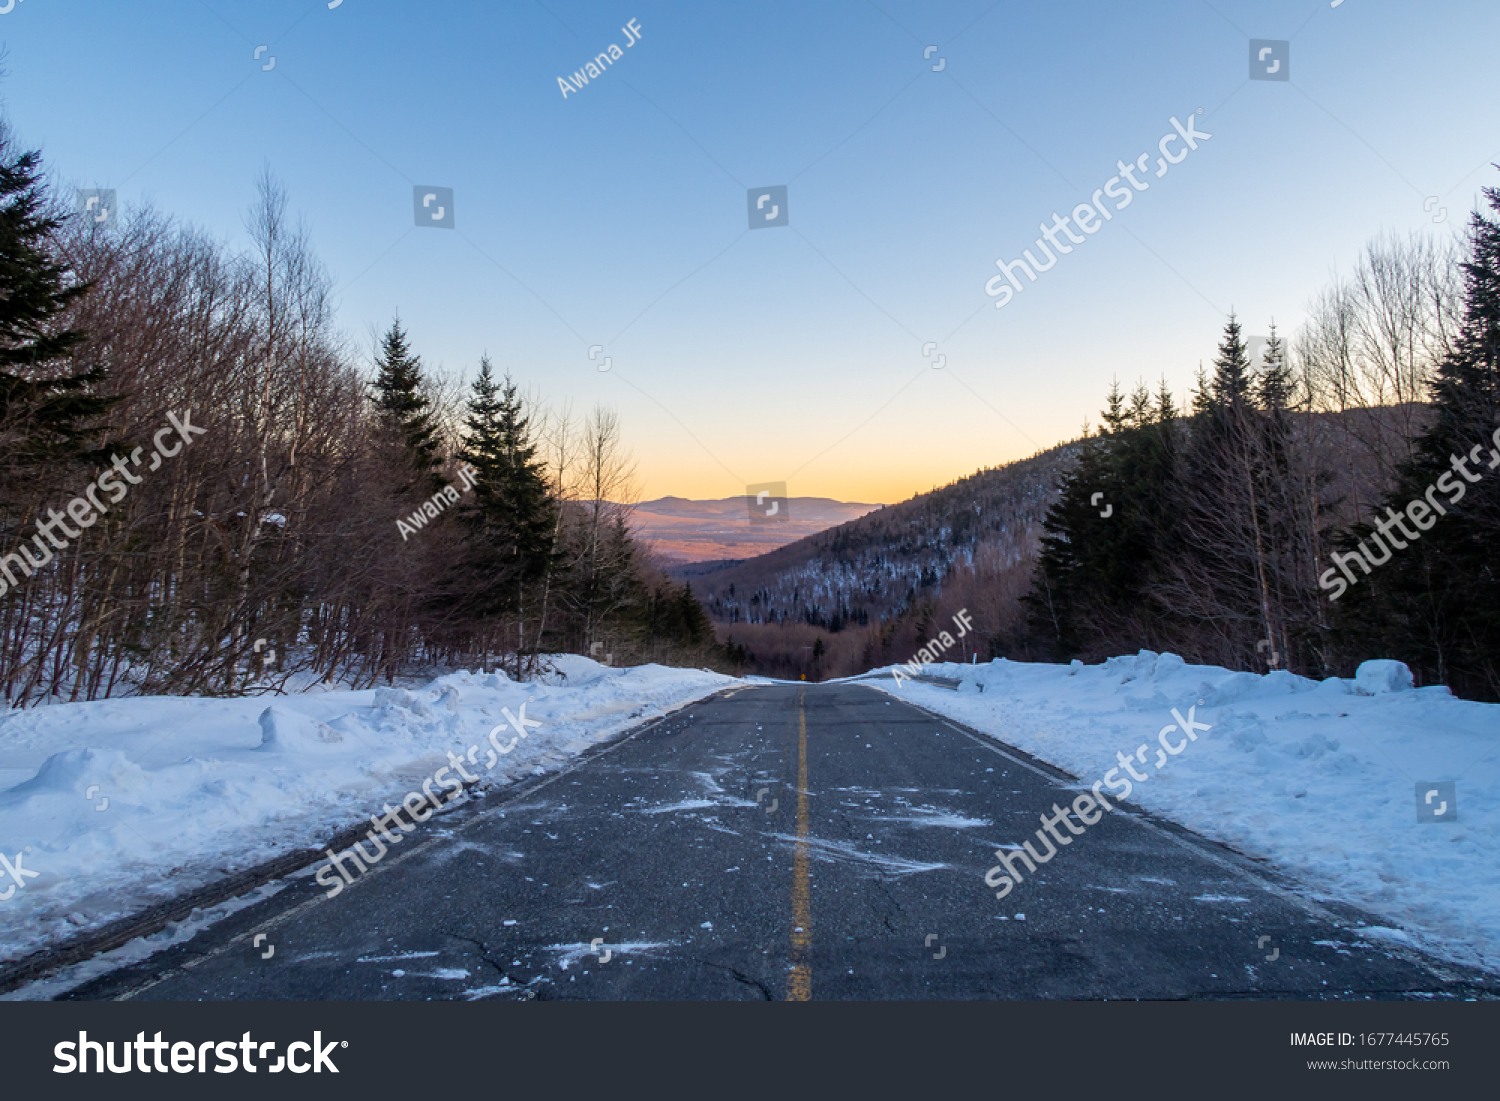 stock-photo-view-of-a-road-separated-wit